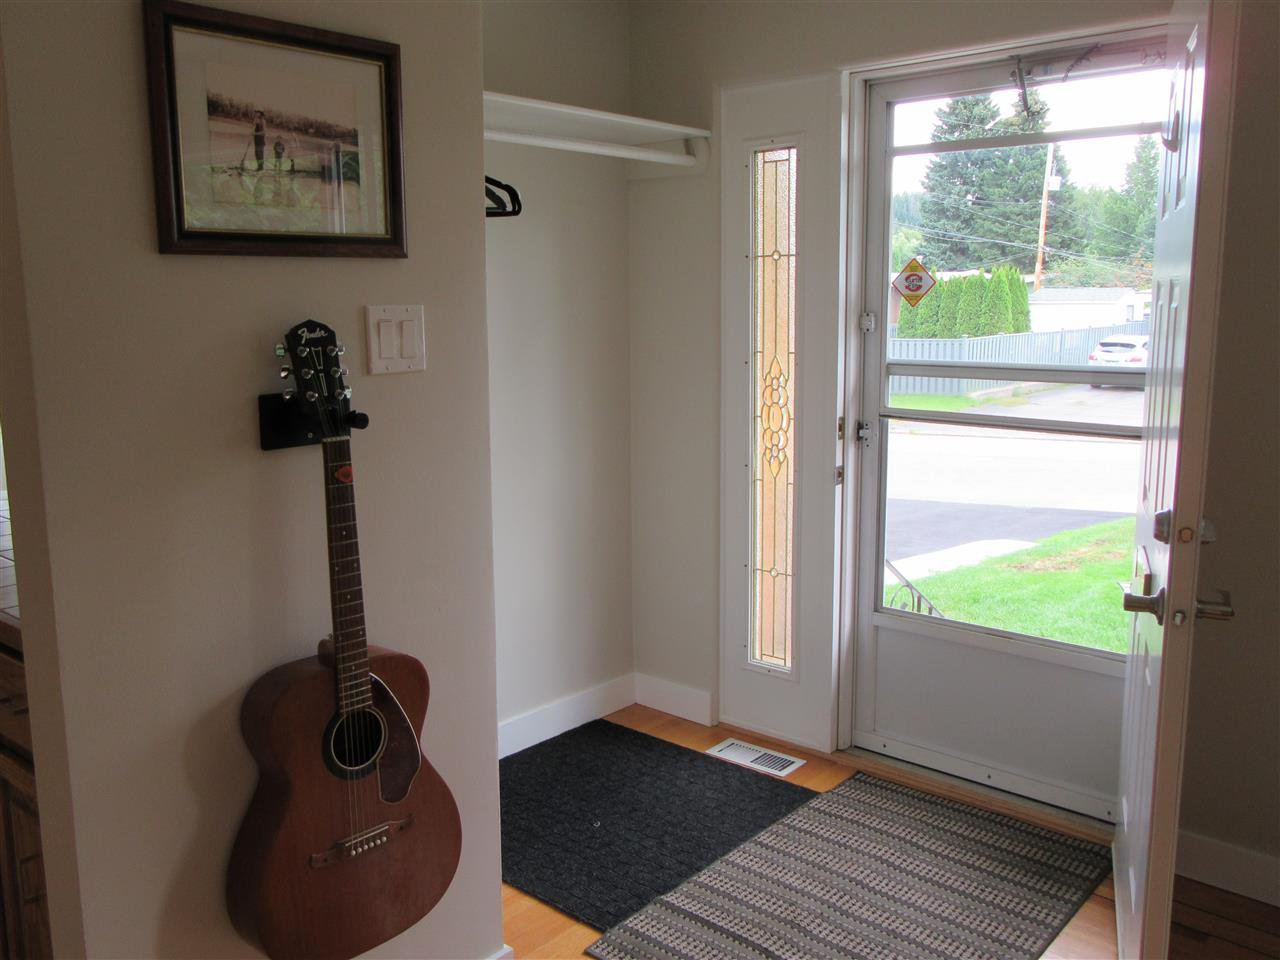 """Photo 36: Photos: 121 FREEMAN Street in Prince George: Nechako View House for sale in """"NECHAKO"""" (PG City Central (Zone 72))  : MLS®# R2493268"""